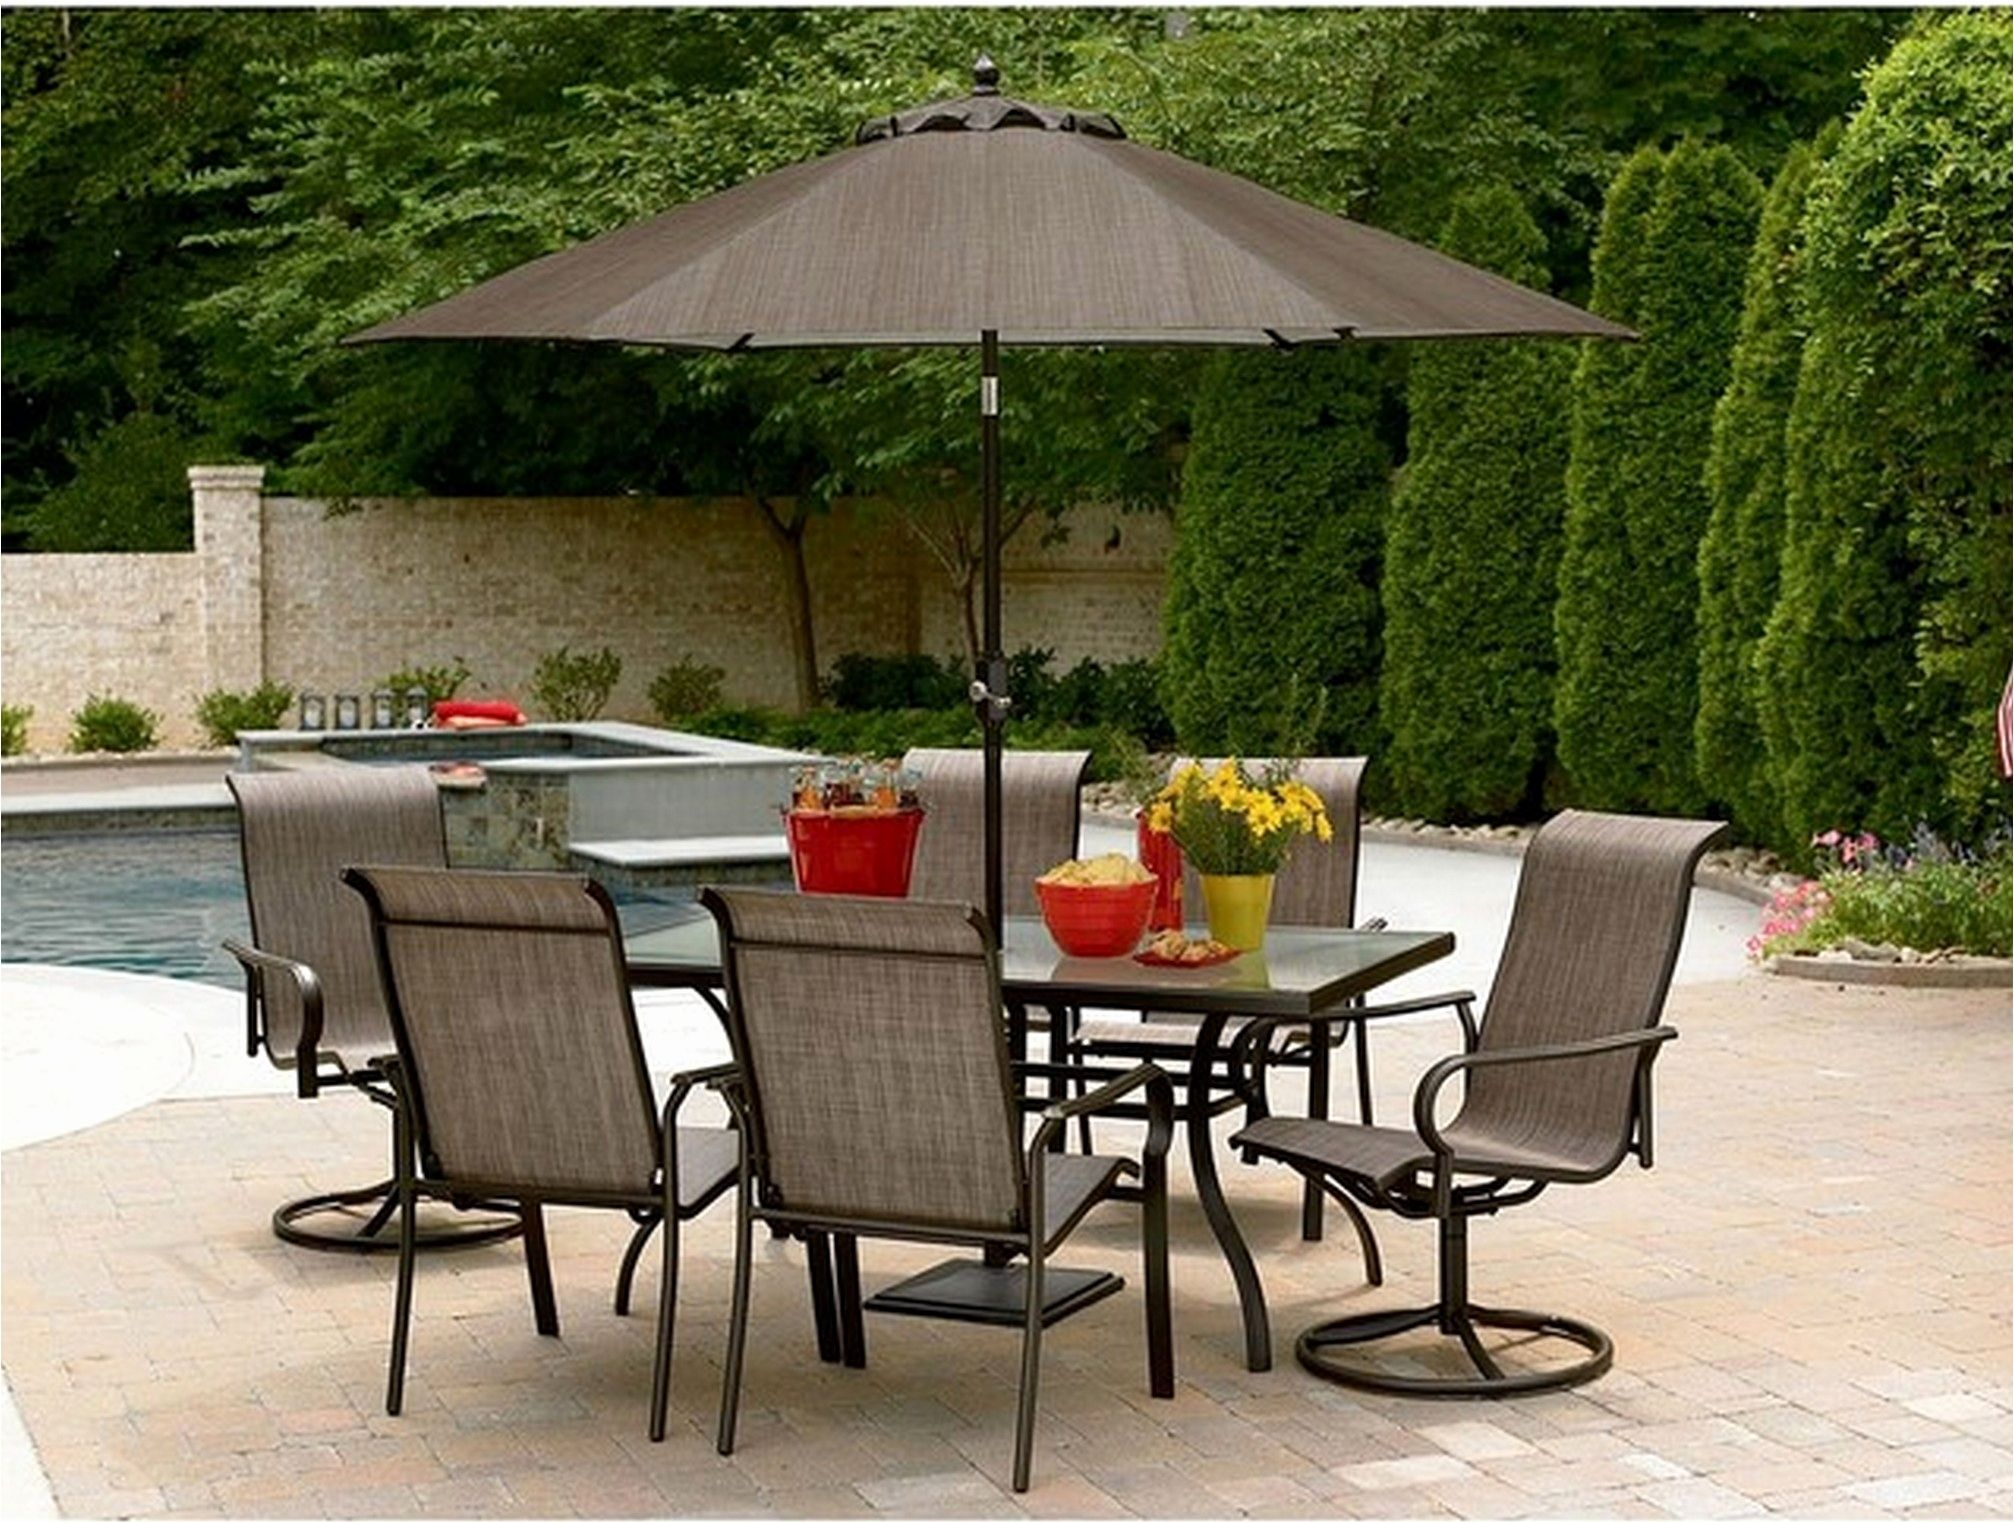 Outdoor Patio Mobel Sets Gartenmobeln Umfasst Fur Den Winter